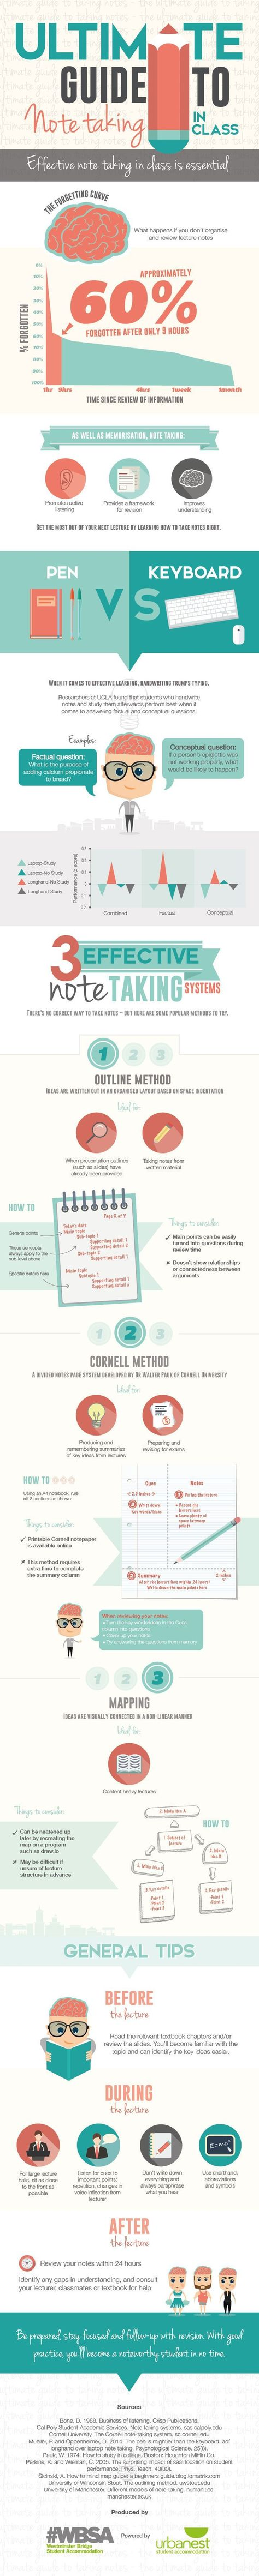 The Ultimate Guide To Note-Taking [Infographic]